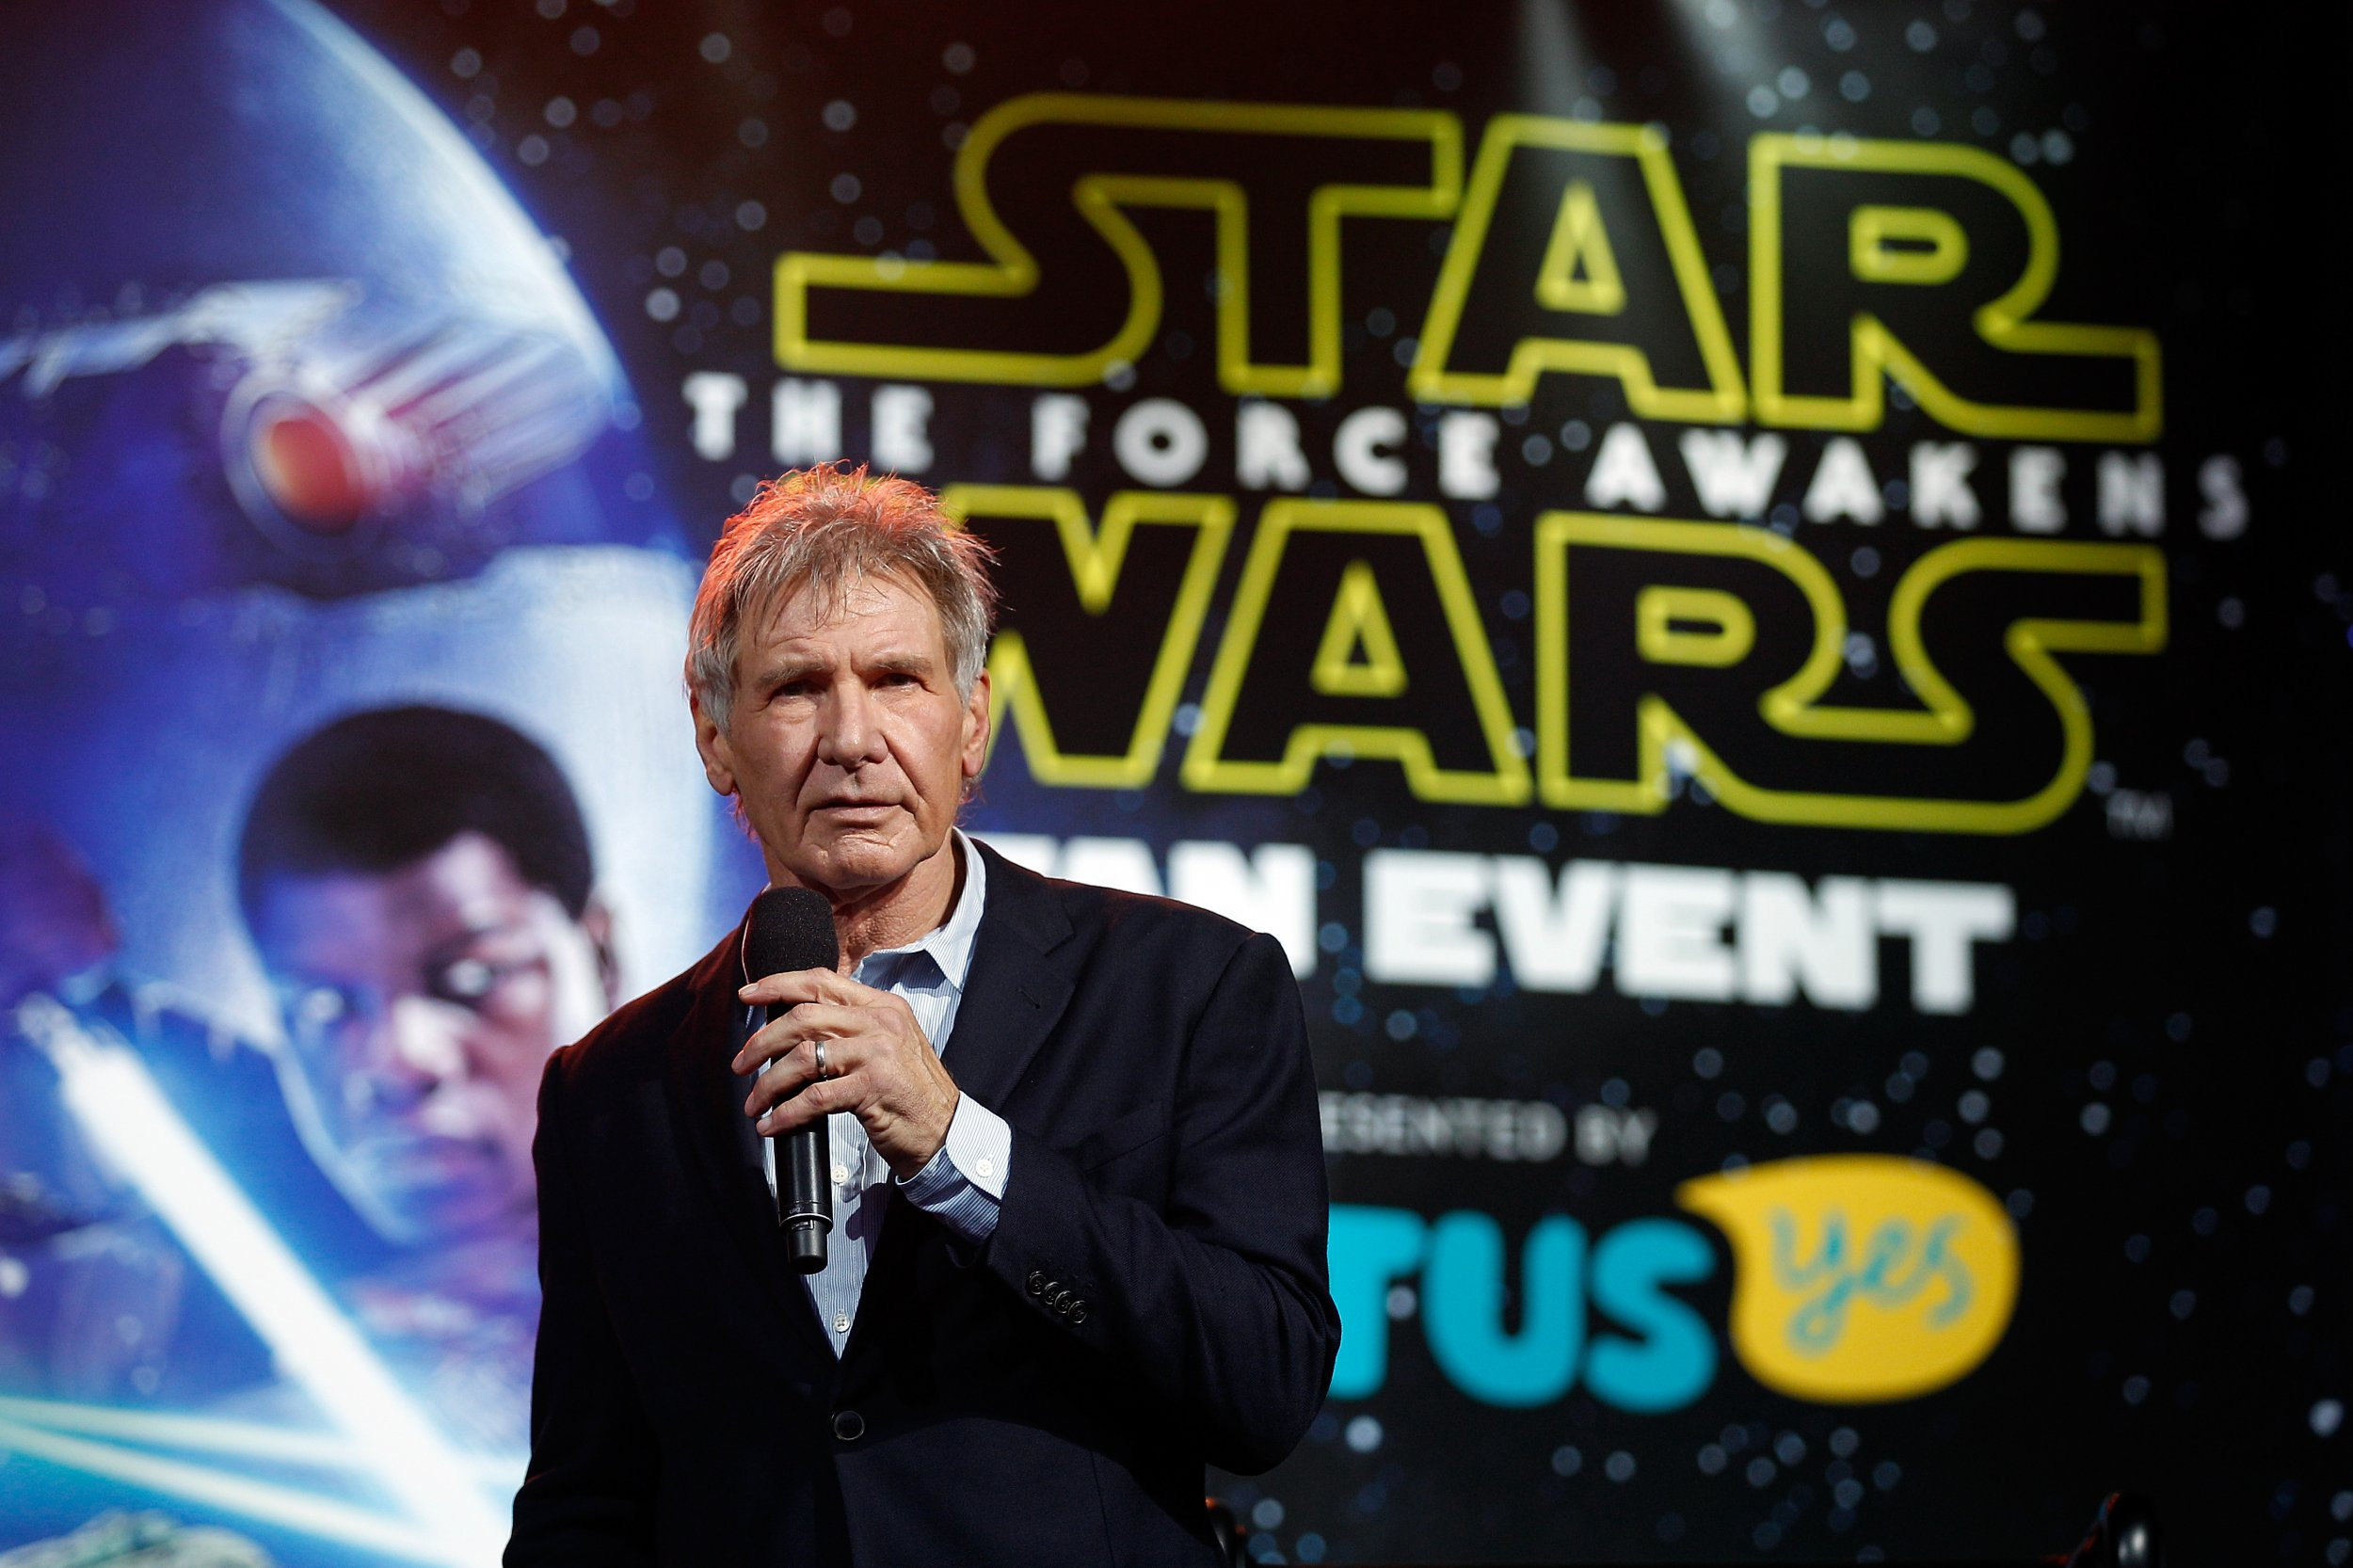 Harrison Ford at Star Wars event